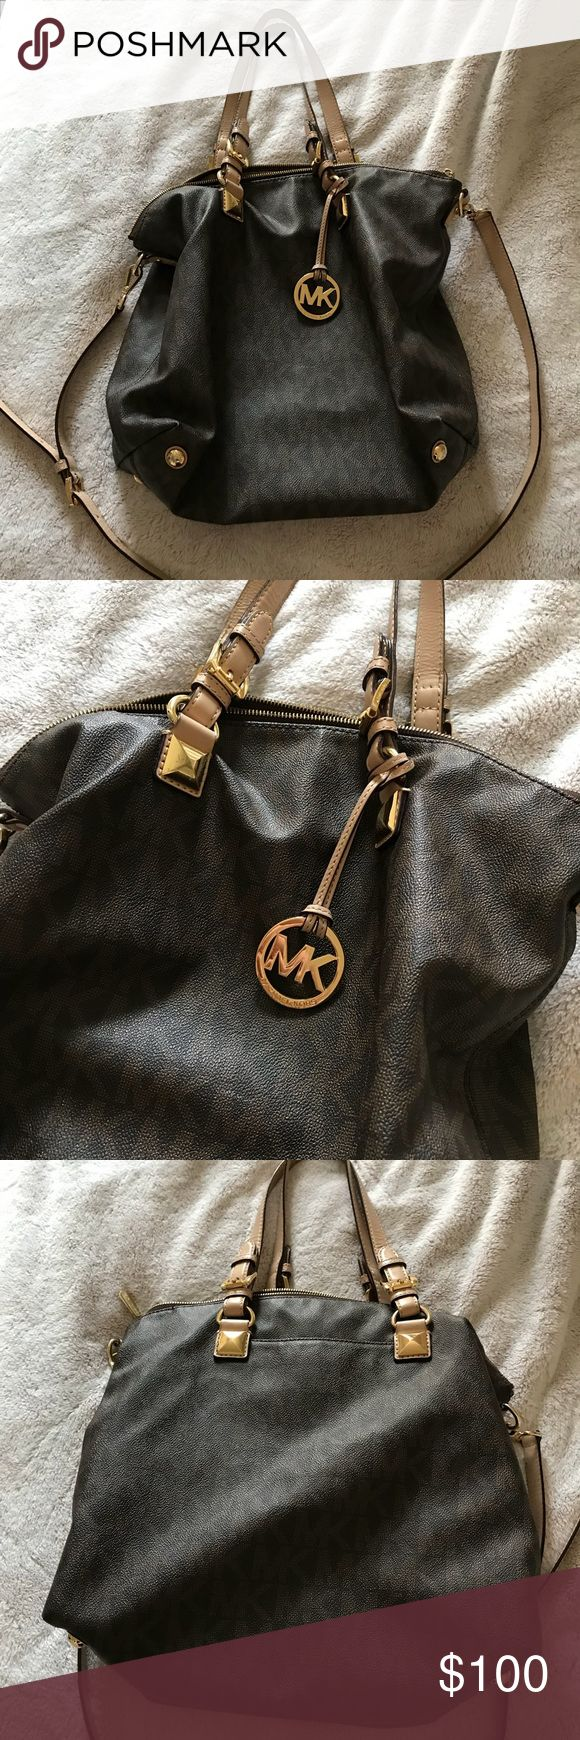 MK tote Worn MK TOTE, has a lot of use left, some of the gold hardware has scratches on them but barely noticeable, and the inside of the bag has a couple of marks but barely noticeable as well! price reflects current condition! Otherwise good condition! Michael Kors Bags Totes